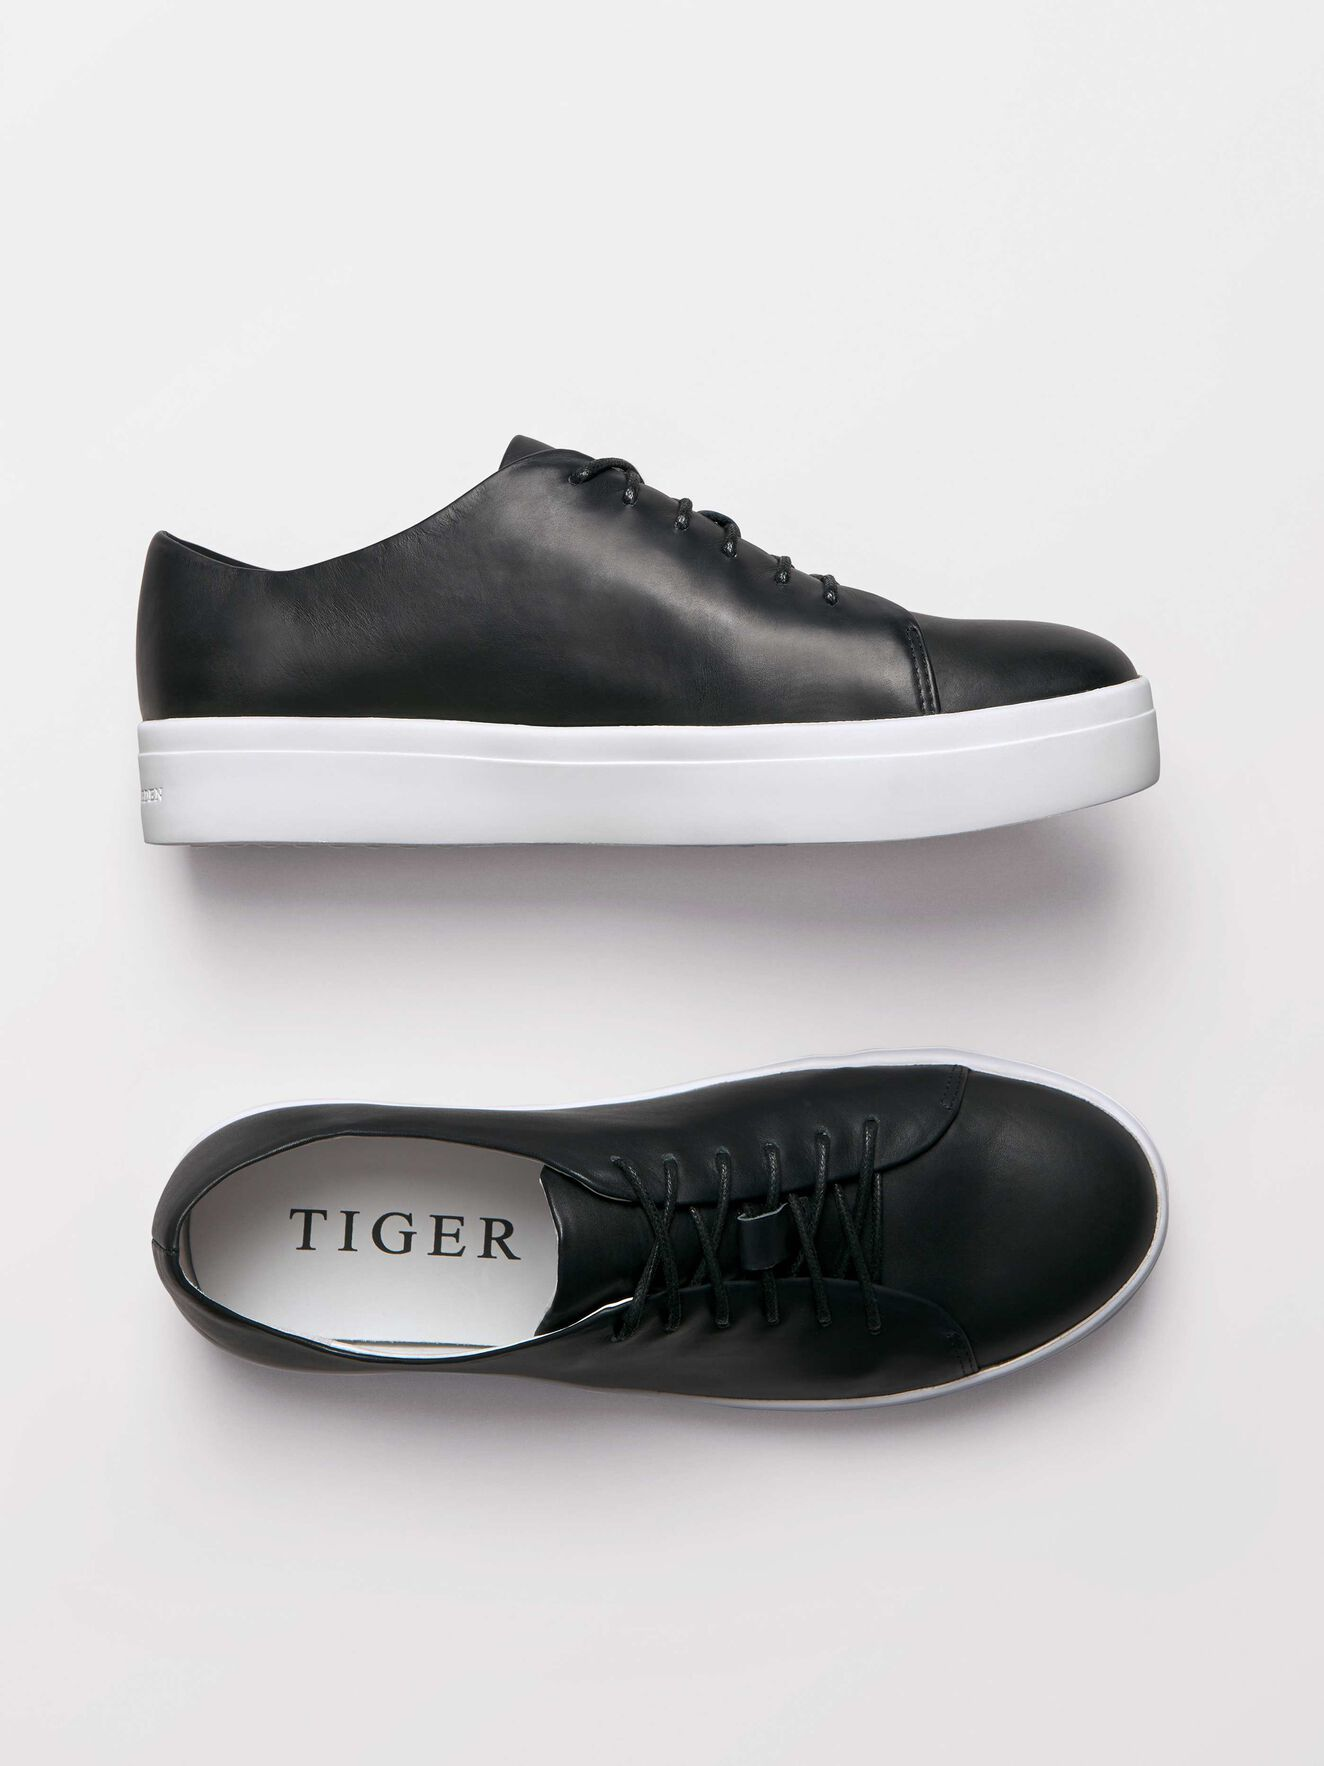 Yvonne Sneakers in Black from Tiger of Sweden